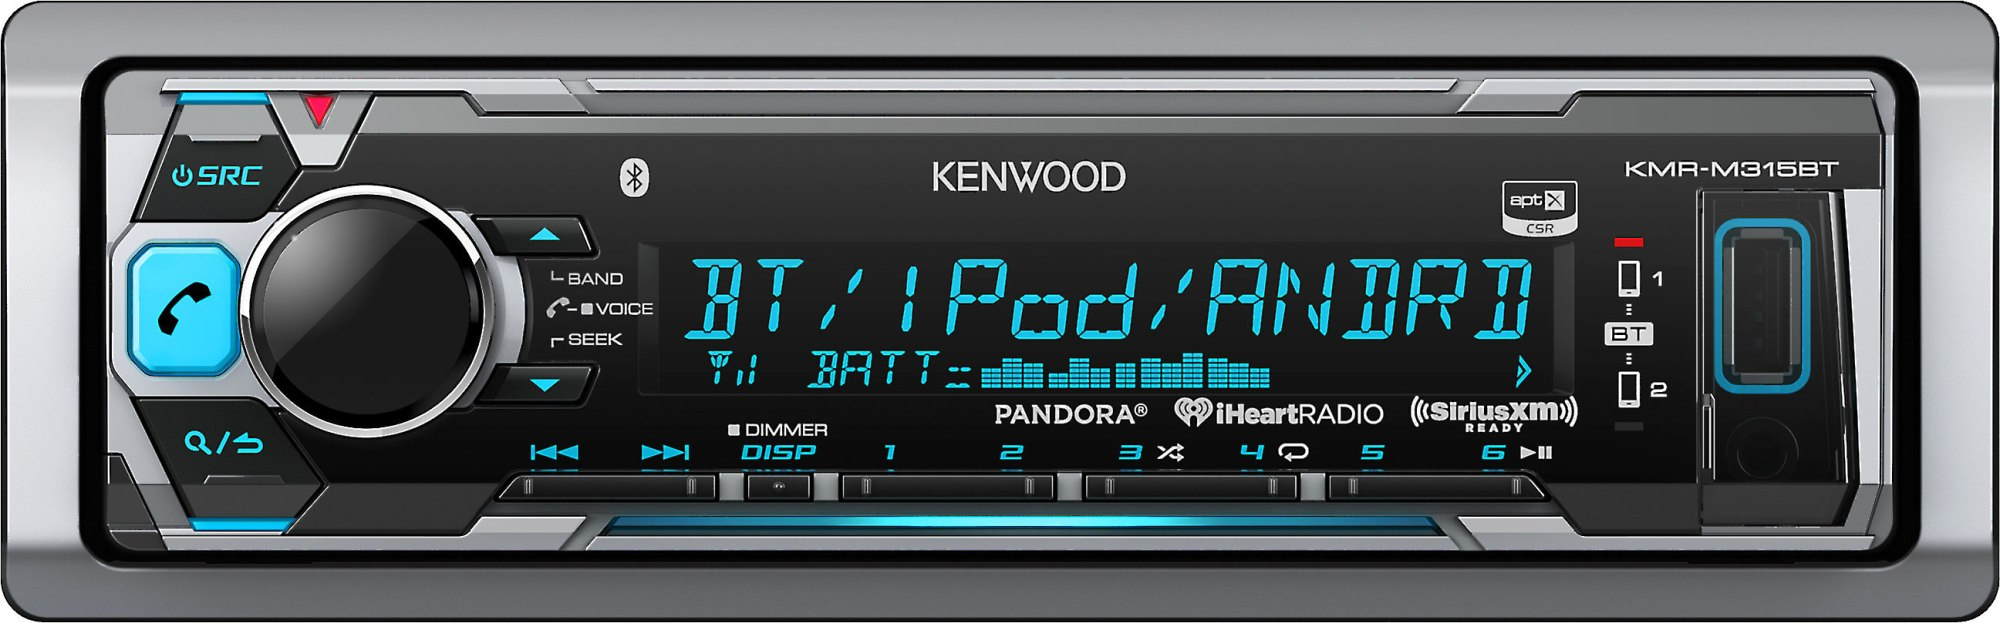 hight resolution of kenwood kmr m315bt marine digital media receiver with bluetooth does not play cds at crutchfield com